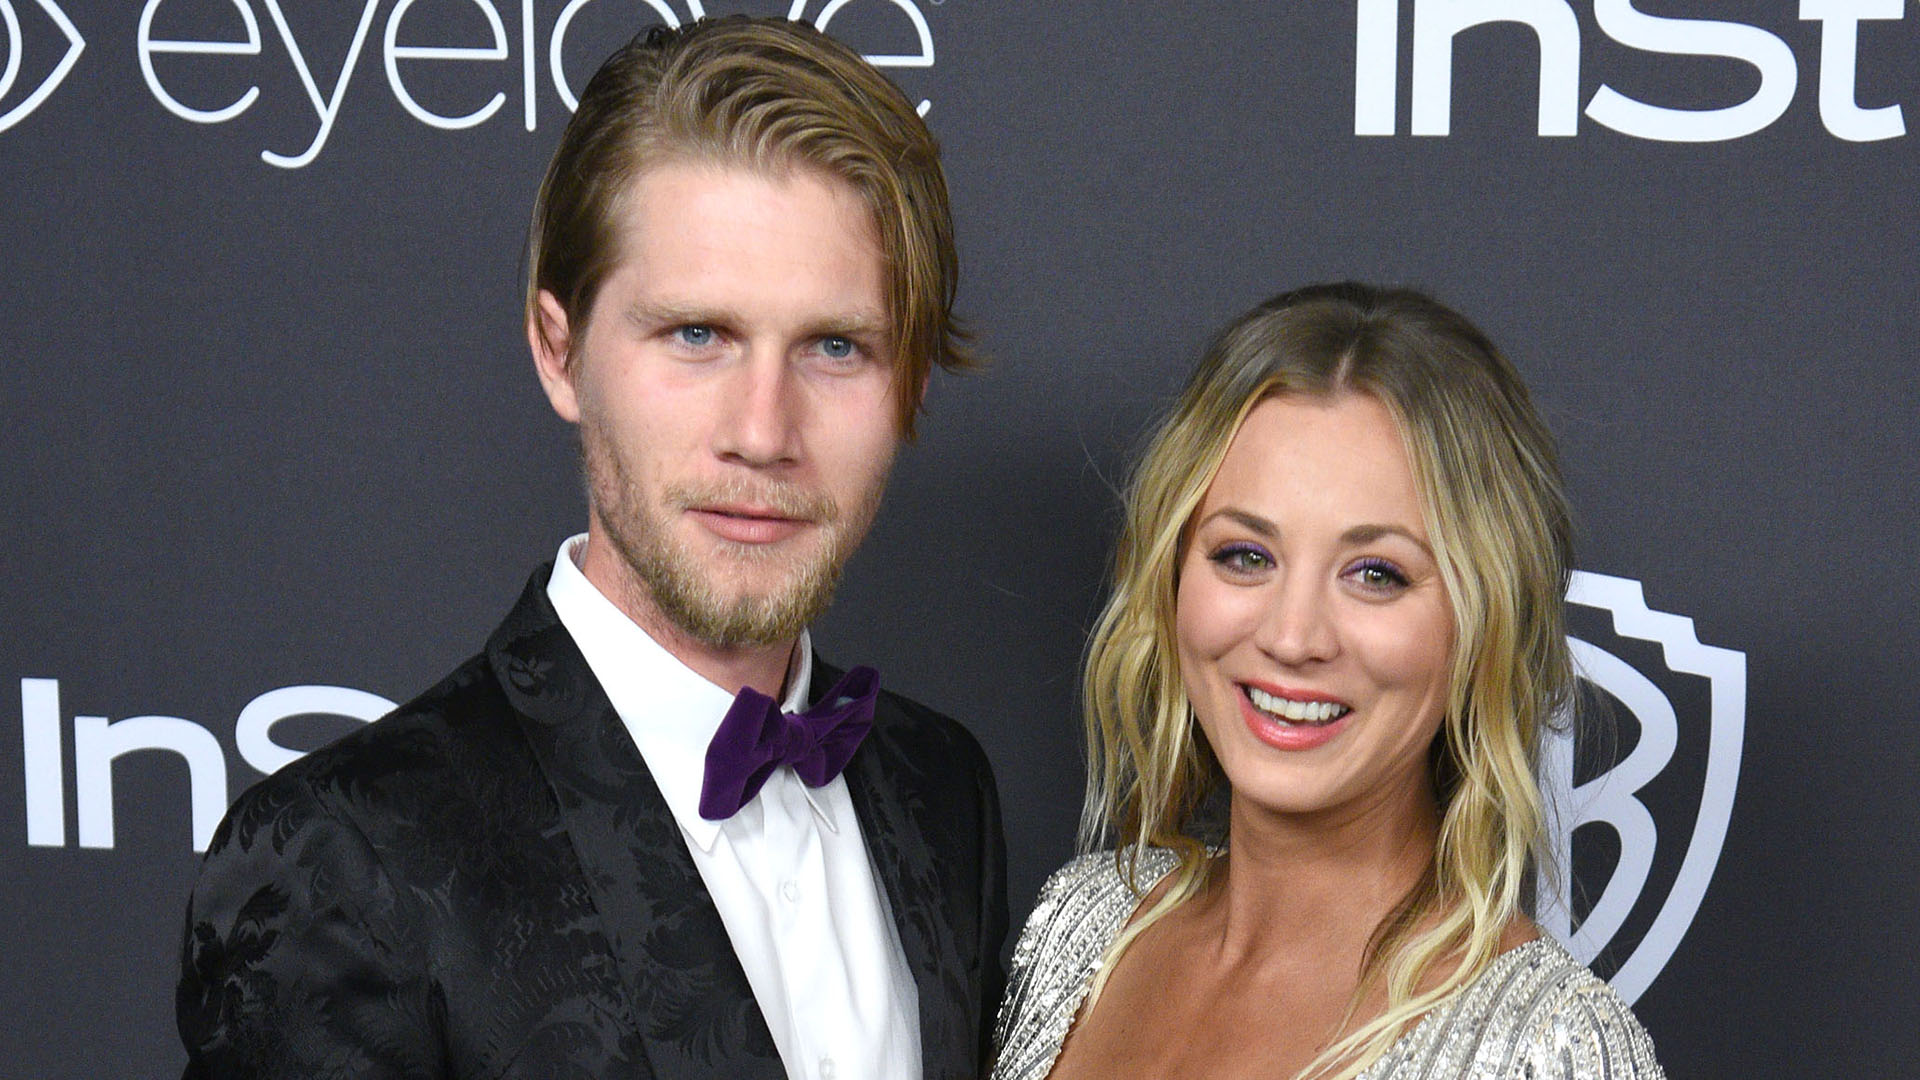 Kaley Cuoco On Her Future With Boyfriend Karl Cook: 'I'M Open To Anything'